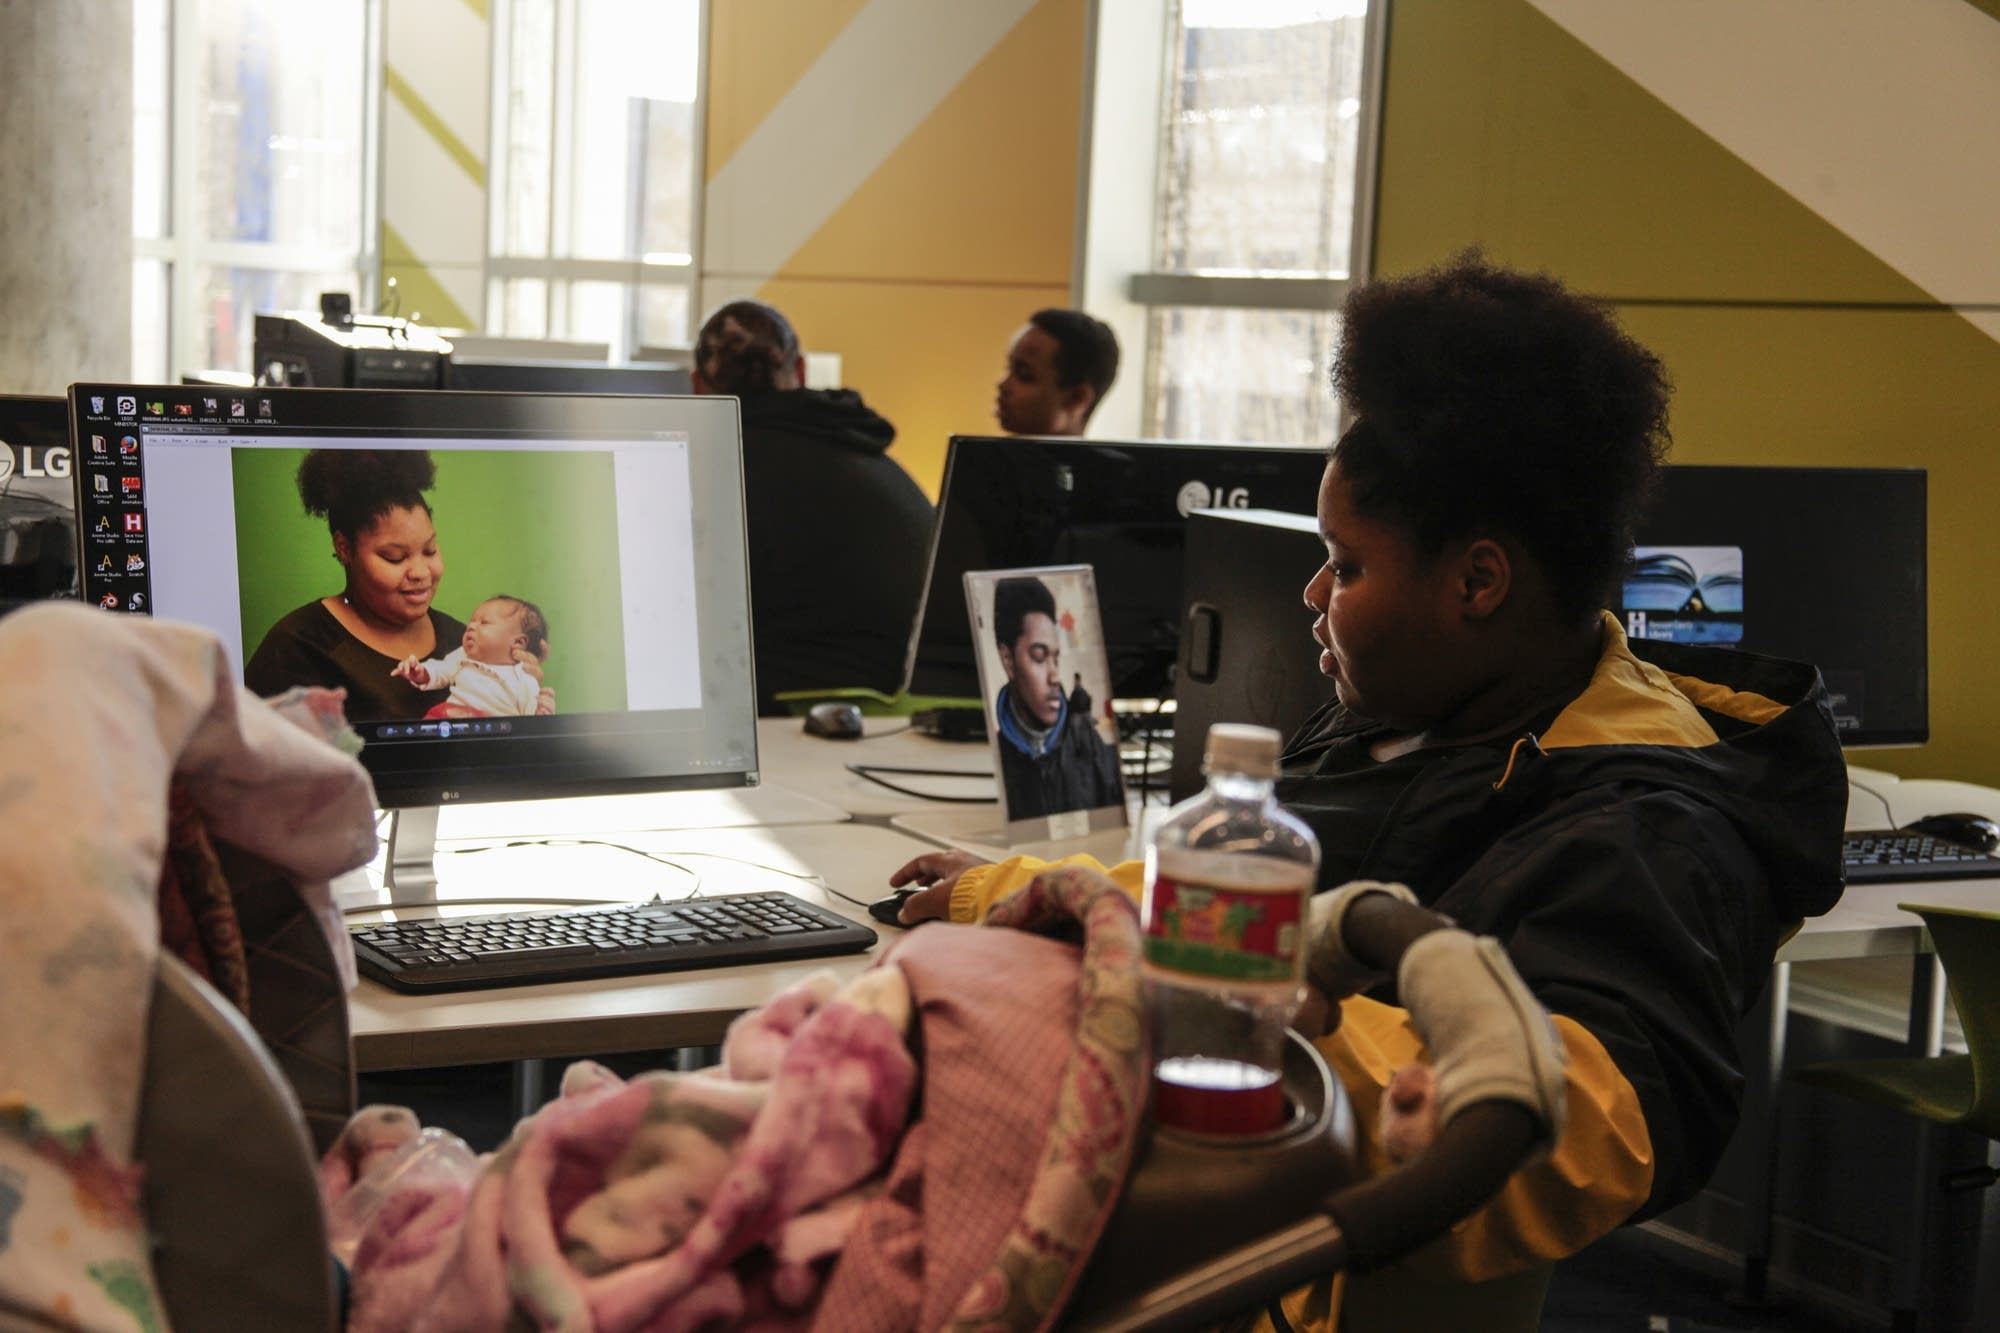 A teen mom edits a photograph of her and her newborn on the computer.